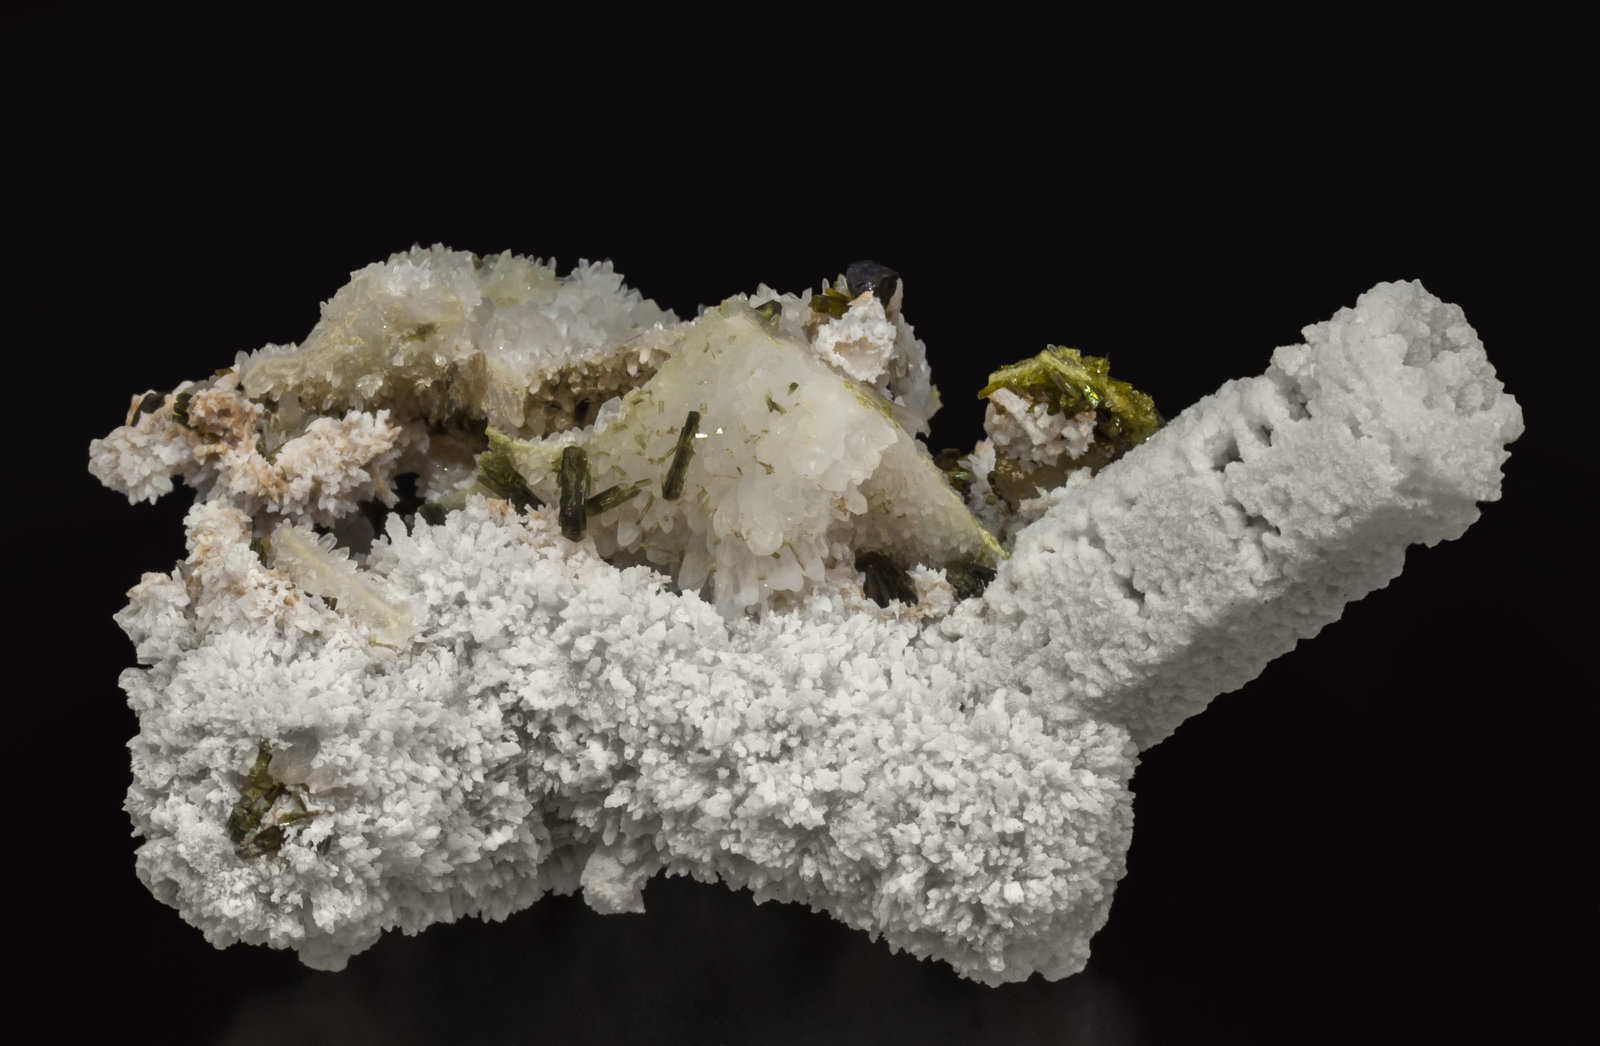 specimens/s_imagesAK8/Calcite-MX26AK8f.jpg